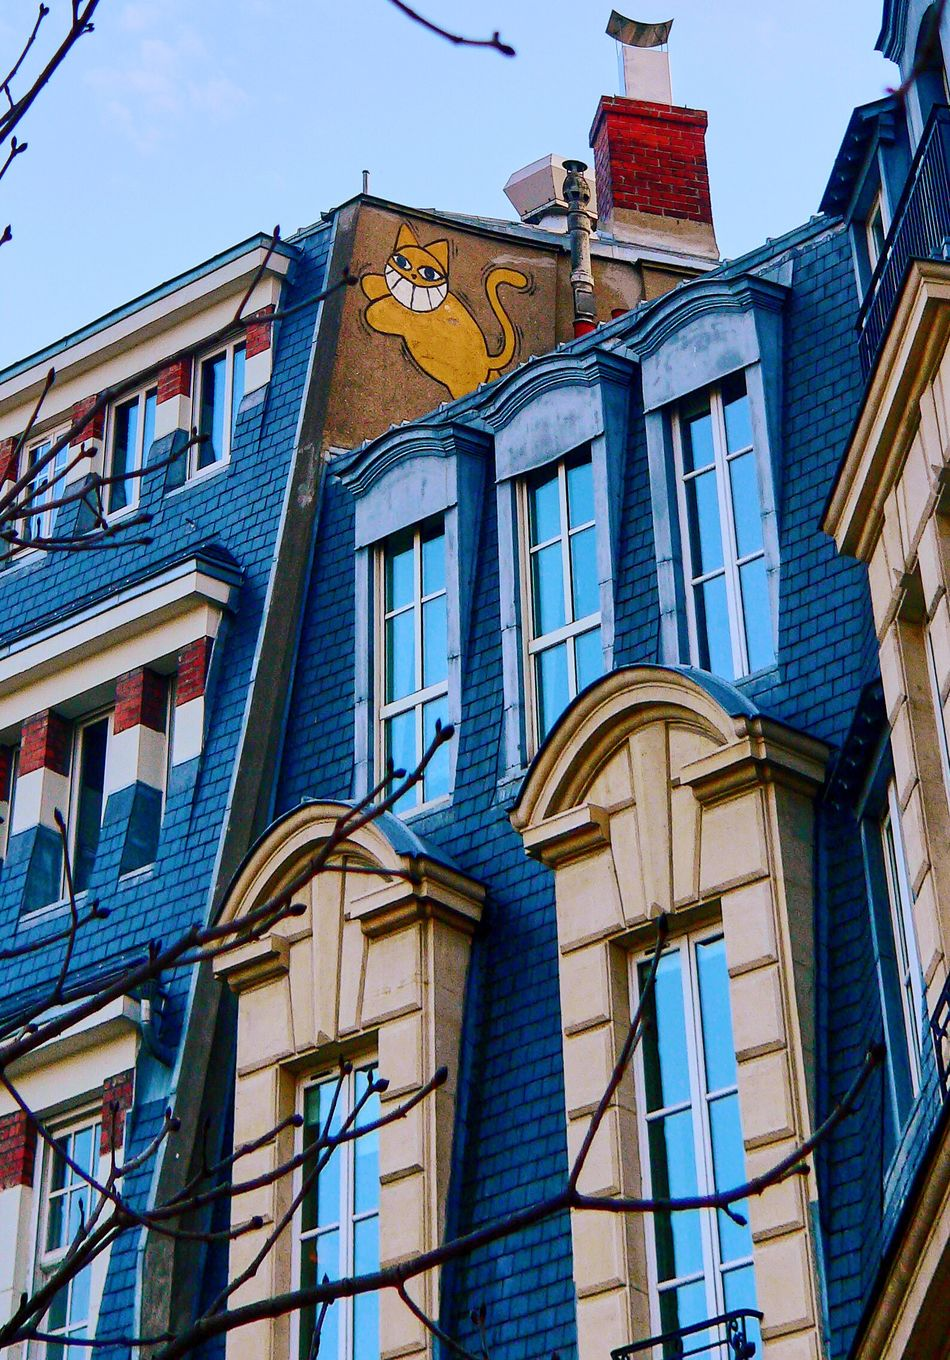 Building Exterior Architecture Built Structure Window Low Angle View Blue No People Outdoors Sky Day Streetphotography Street Art Street Art/Graffiti Cat Smiley Cat Cheshire Cheshire Cat Walk Paris Promenade Photooftheday